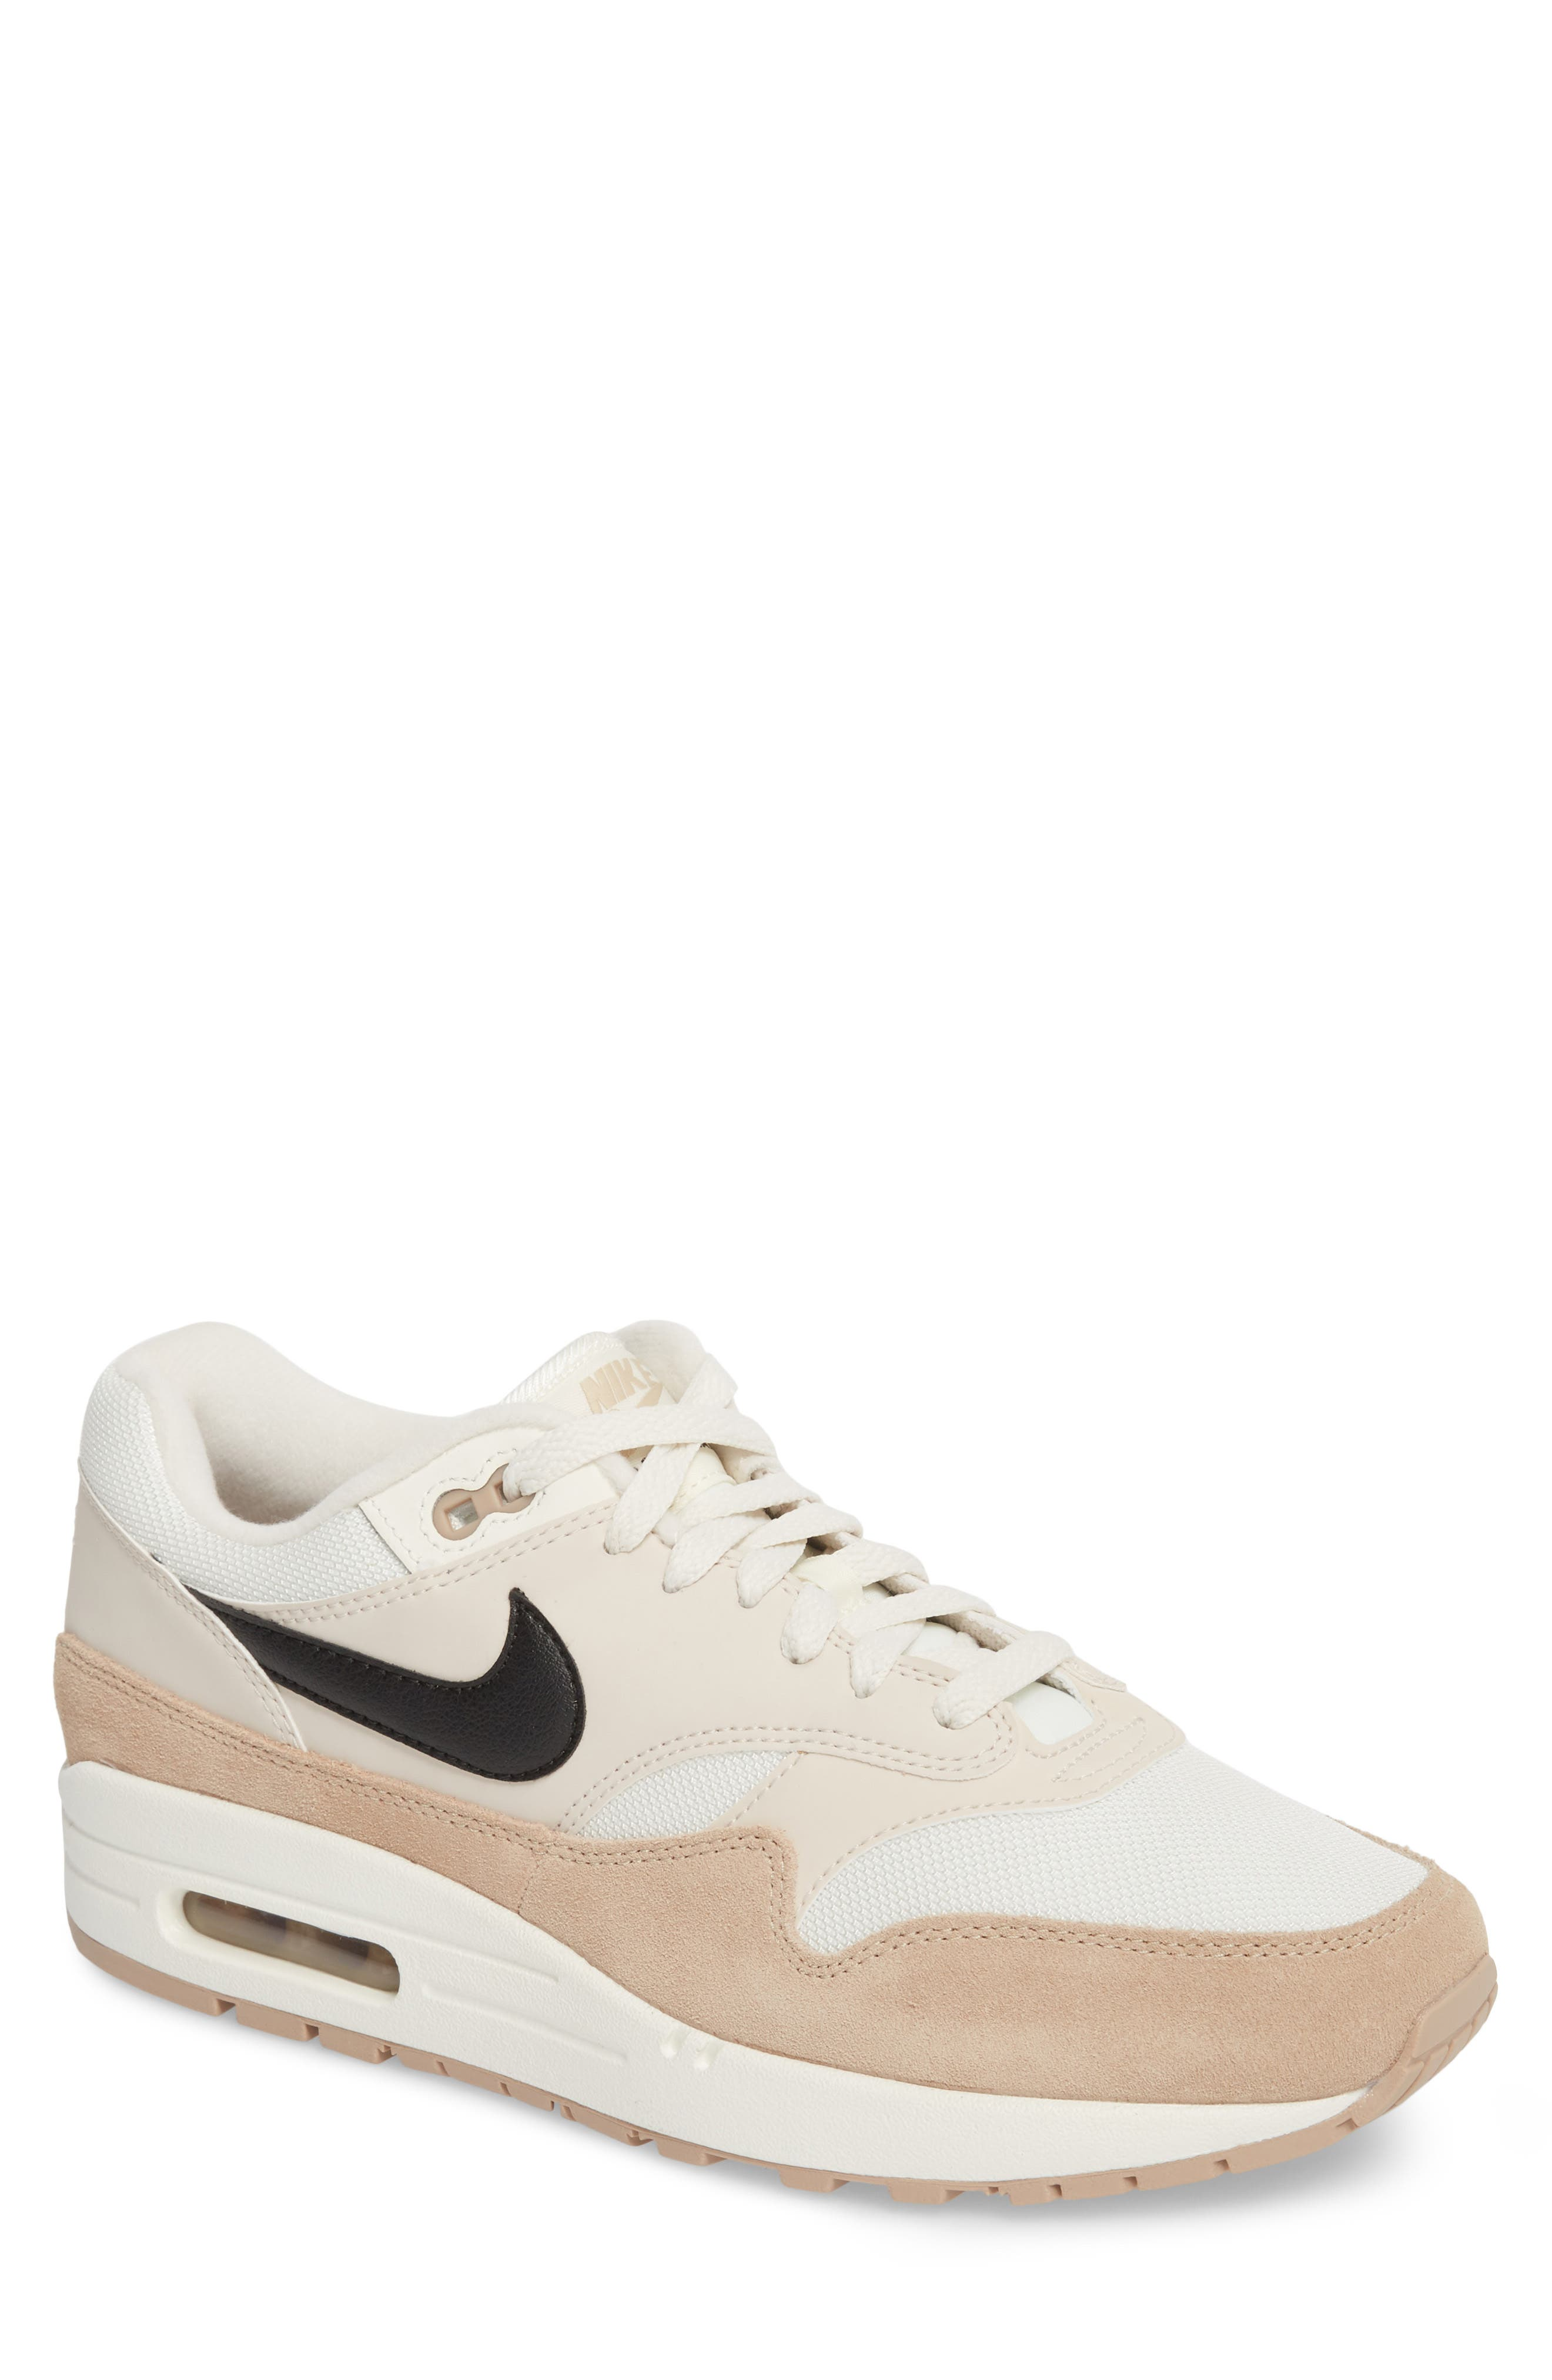 Nike Air Max 1 Sneaker (Men)